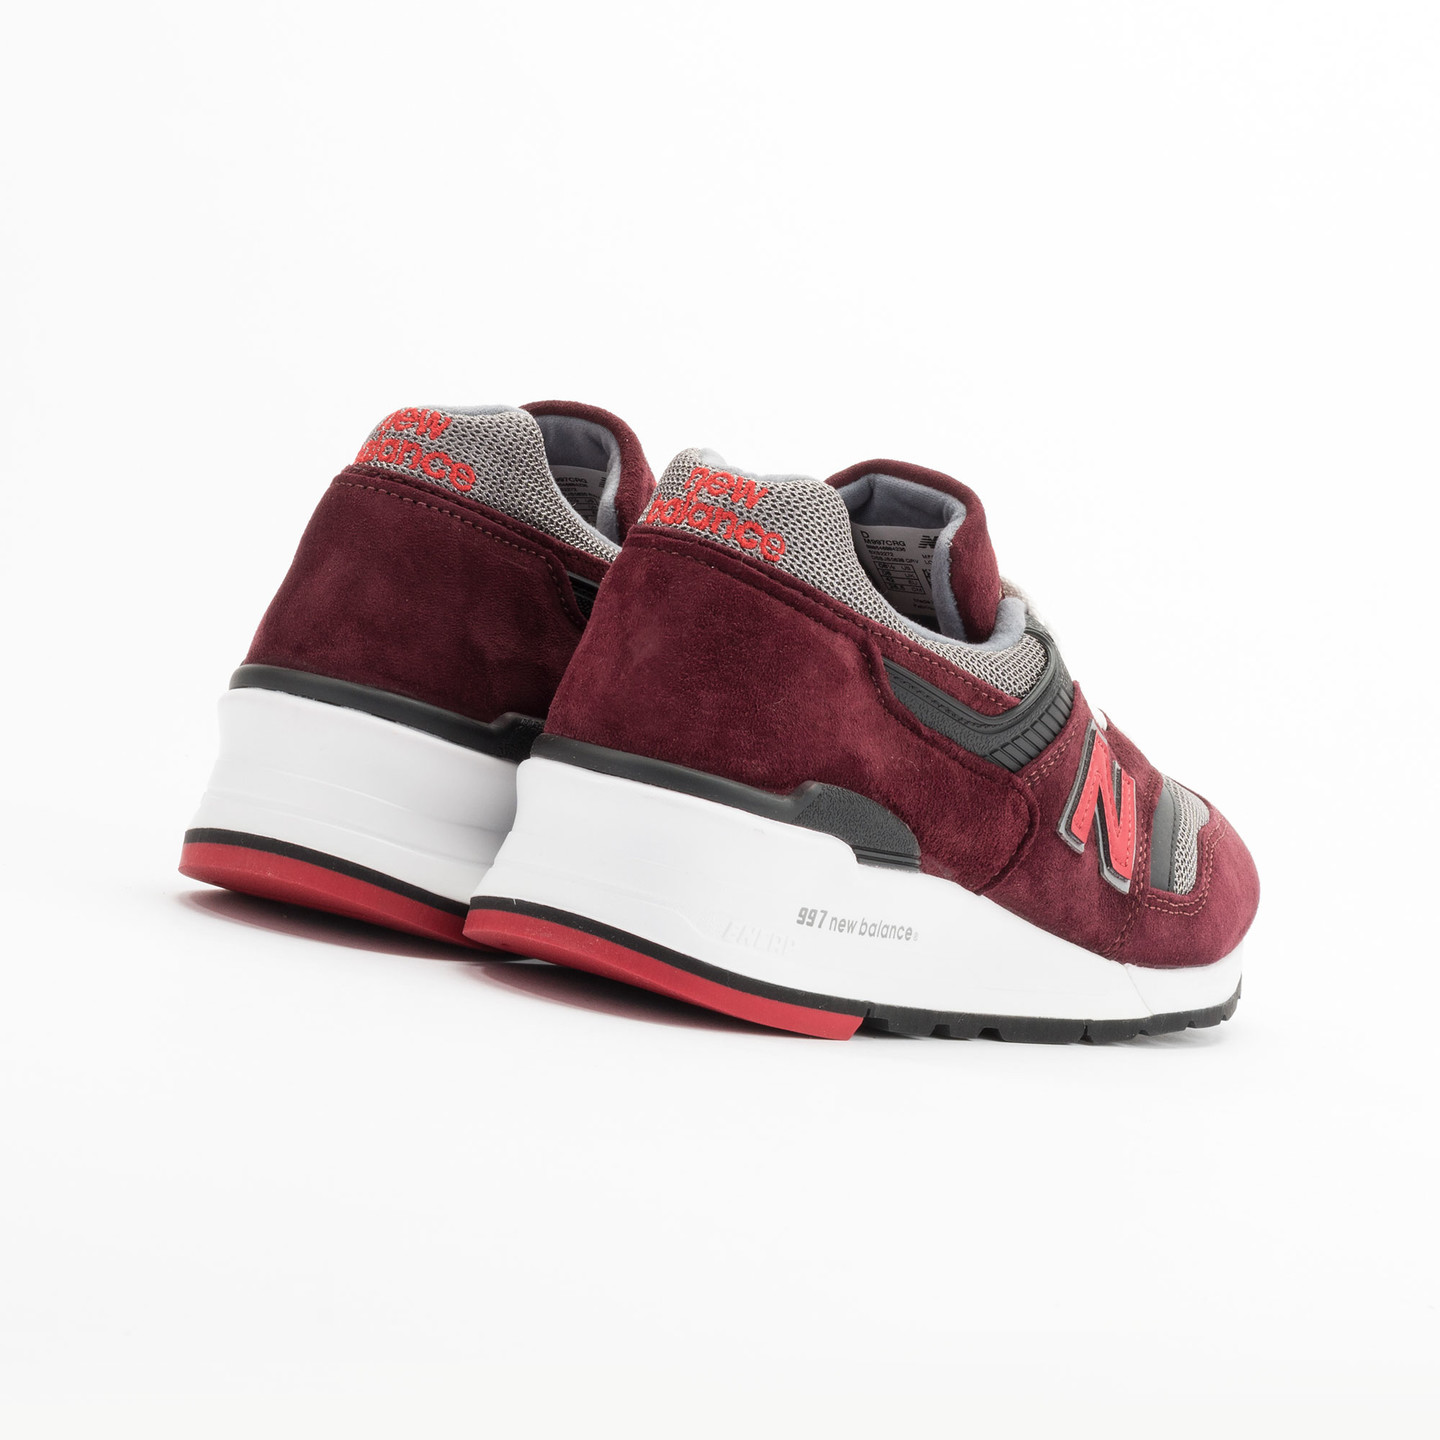 New Balance M997 CRG - Made in USA Brick Red / Black / Grey M997CRG-43